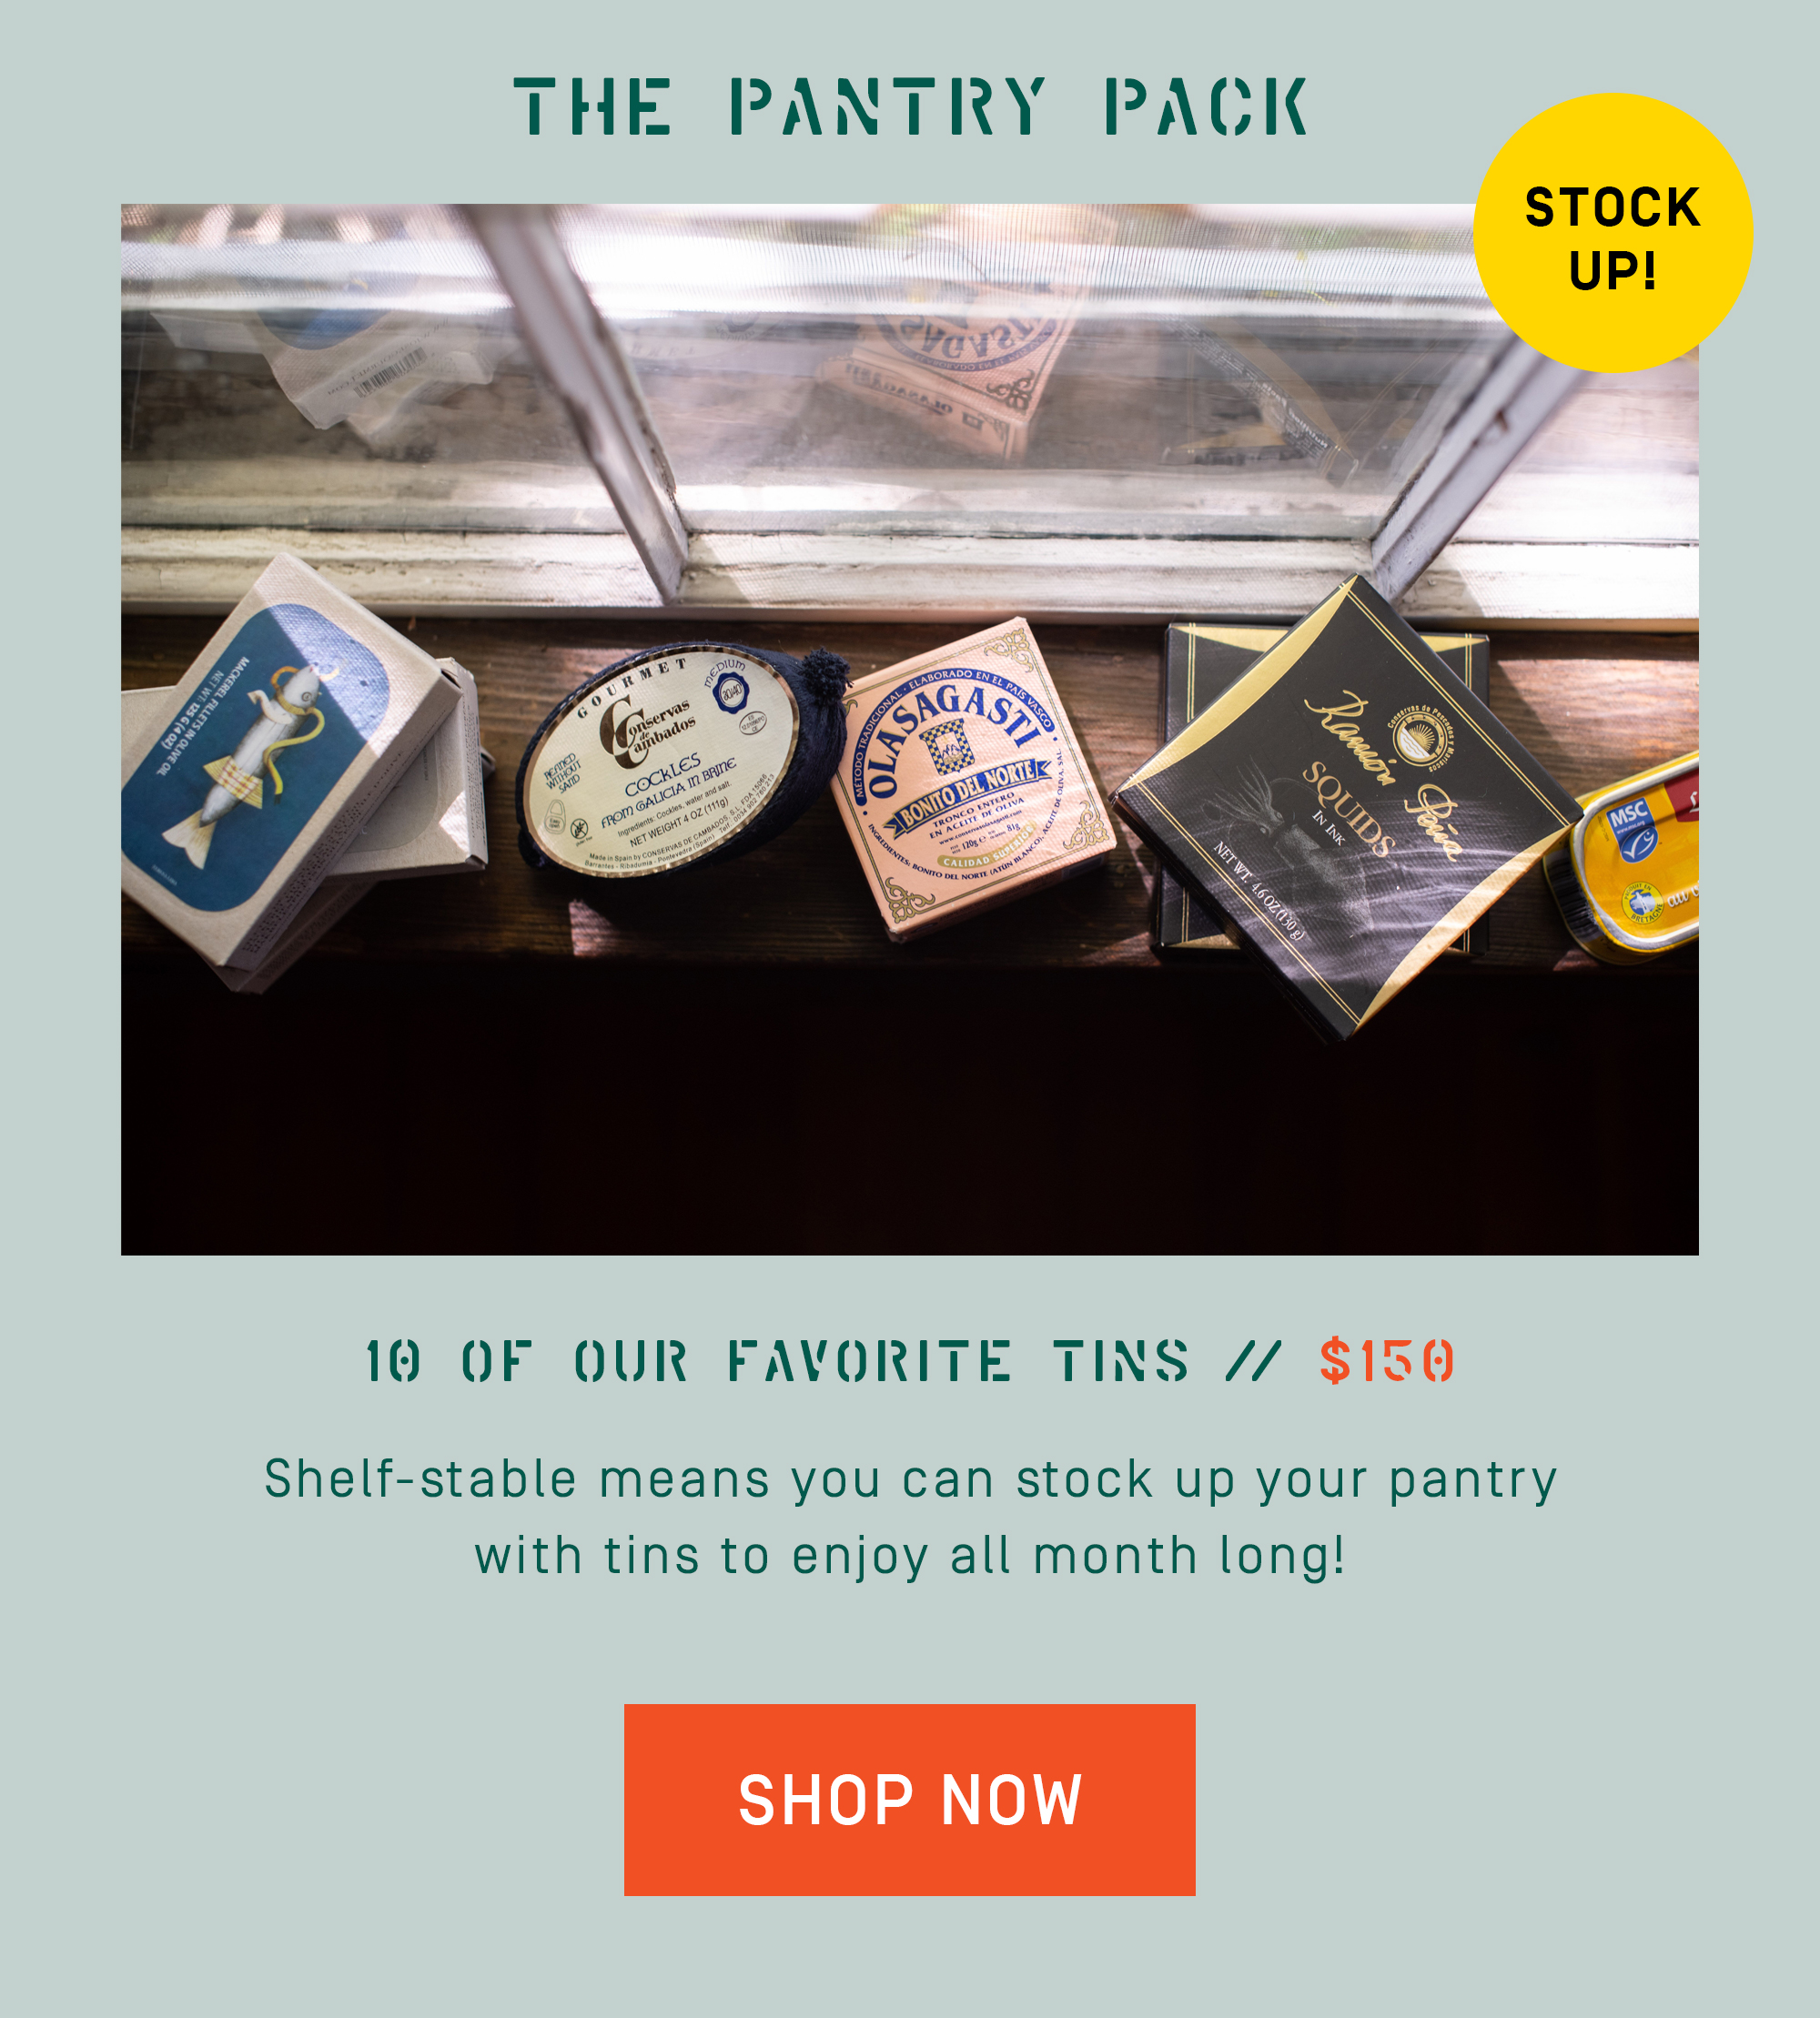 The Pantry Pack: 10 of our favorite tins. Perfect to stock your pantry. Shop now!